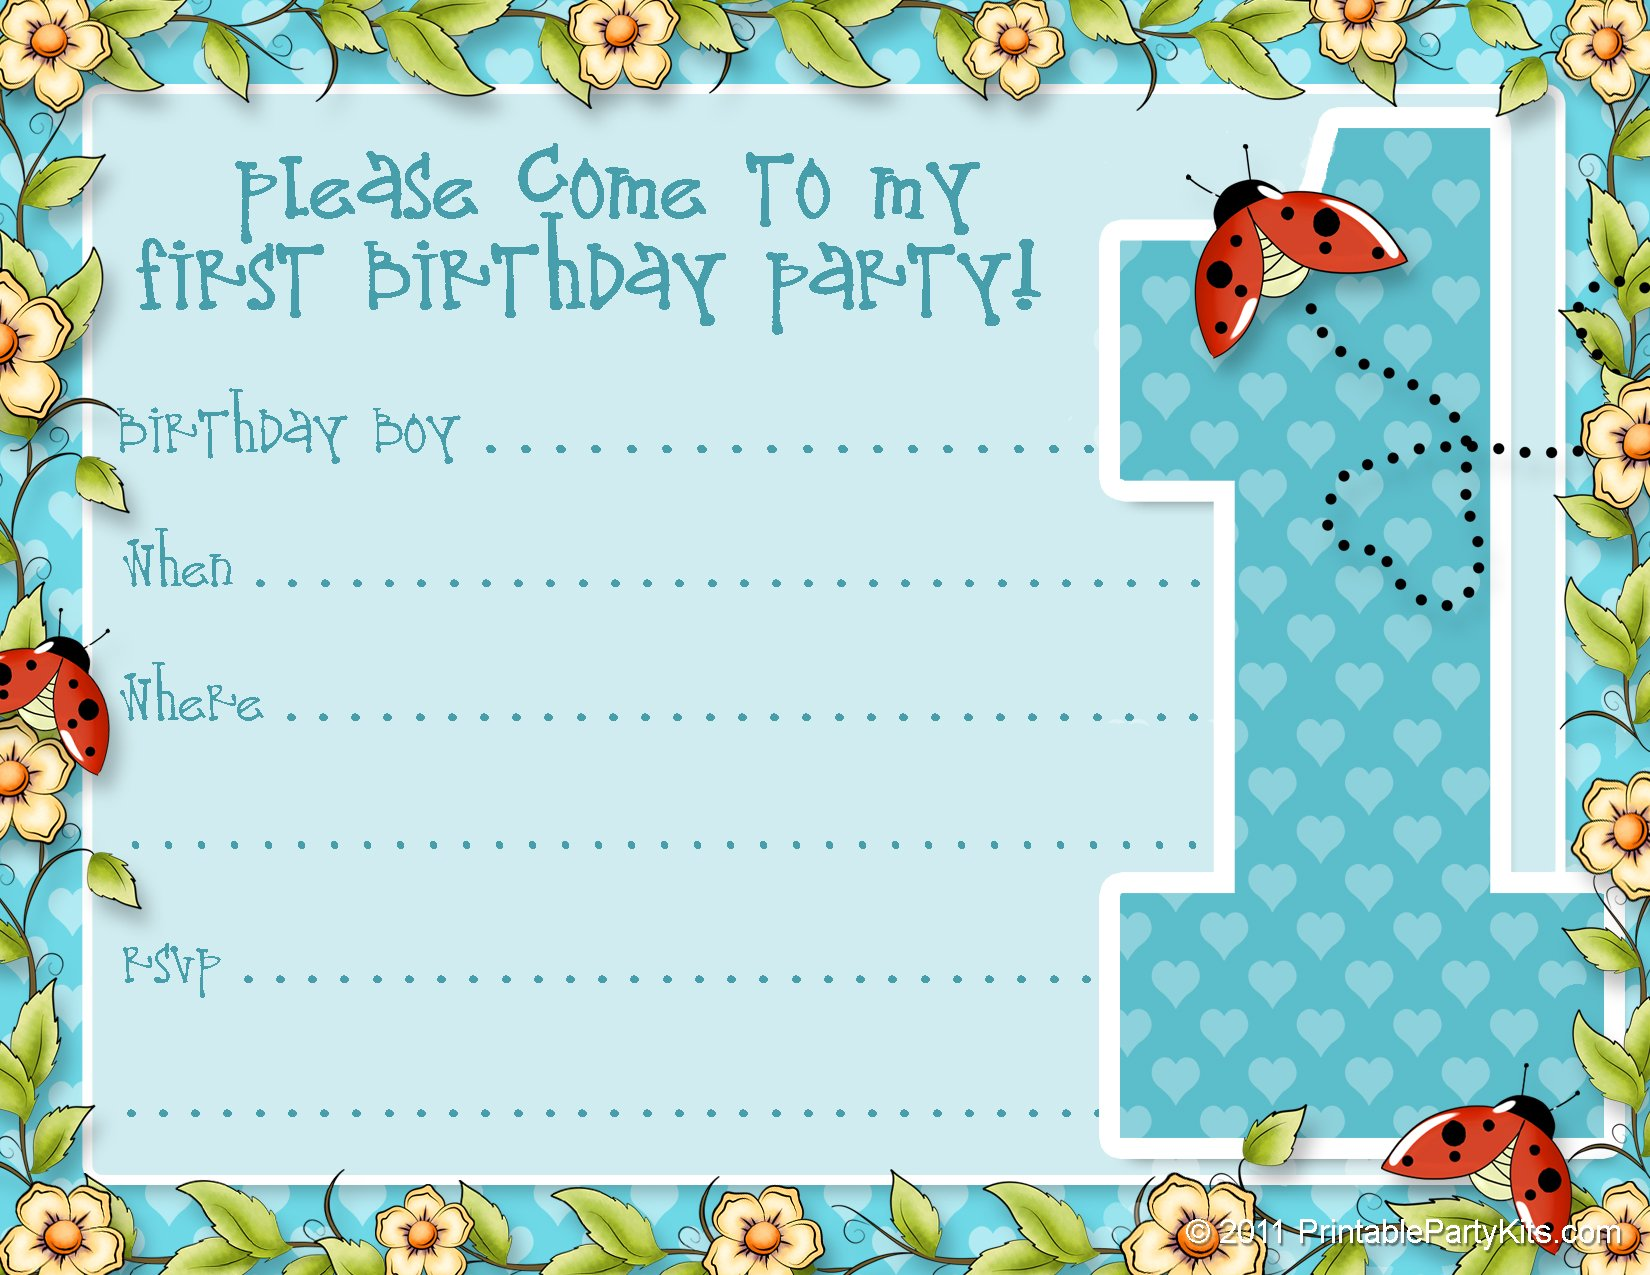 Printable Birthday Party Invitations – Bagvania FREE Printable ...